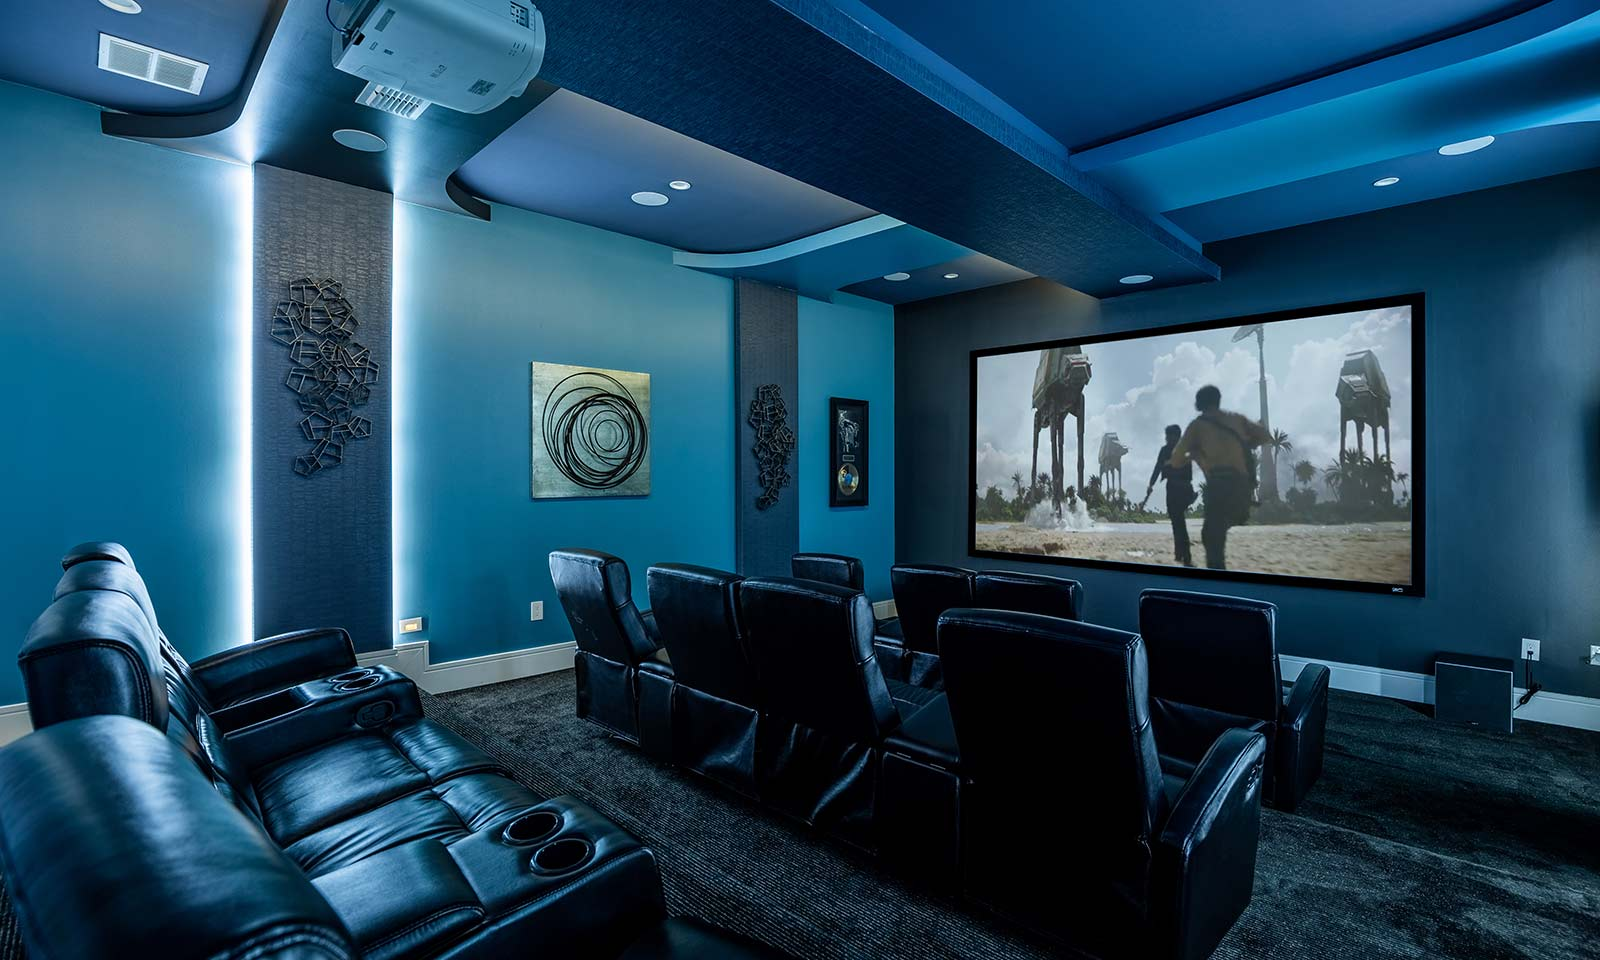 [amenities:Theater-Room:3] Theater Room